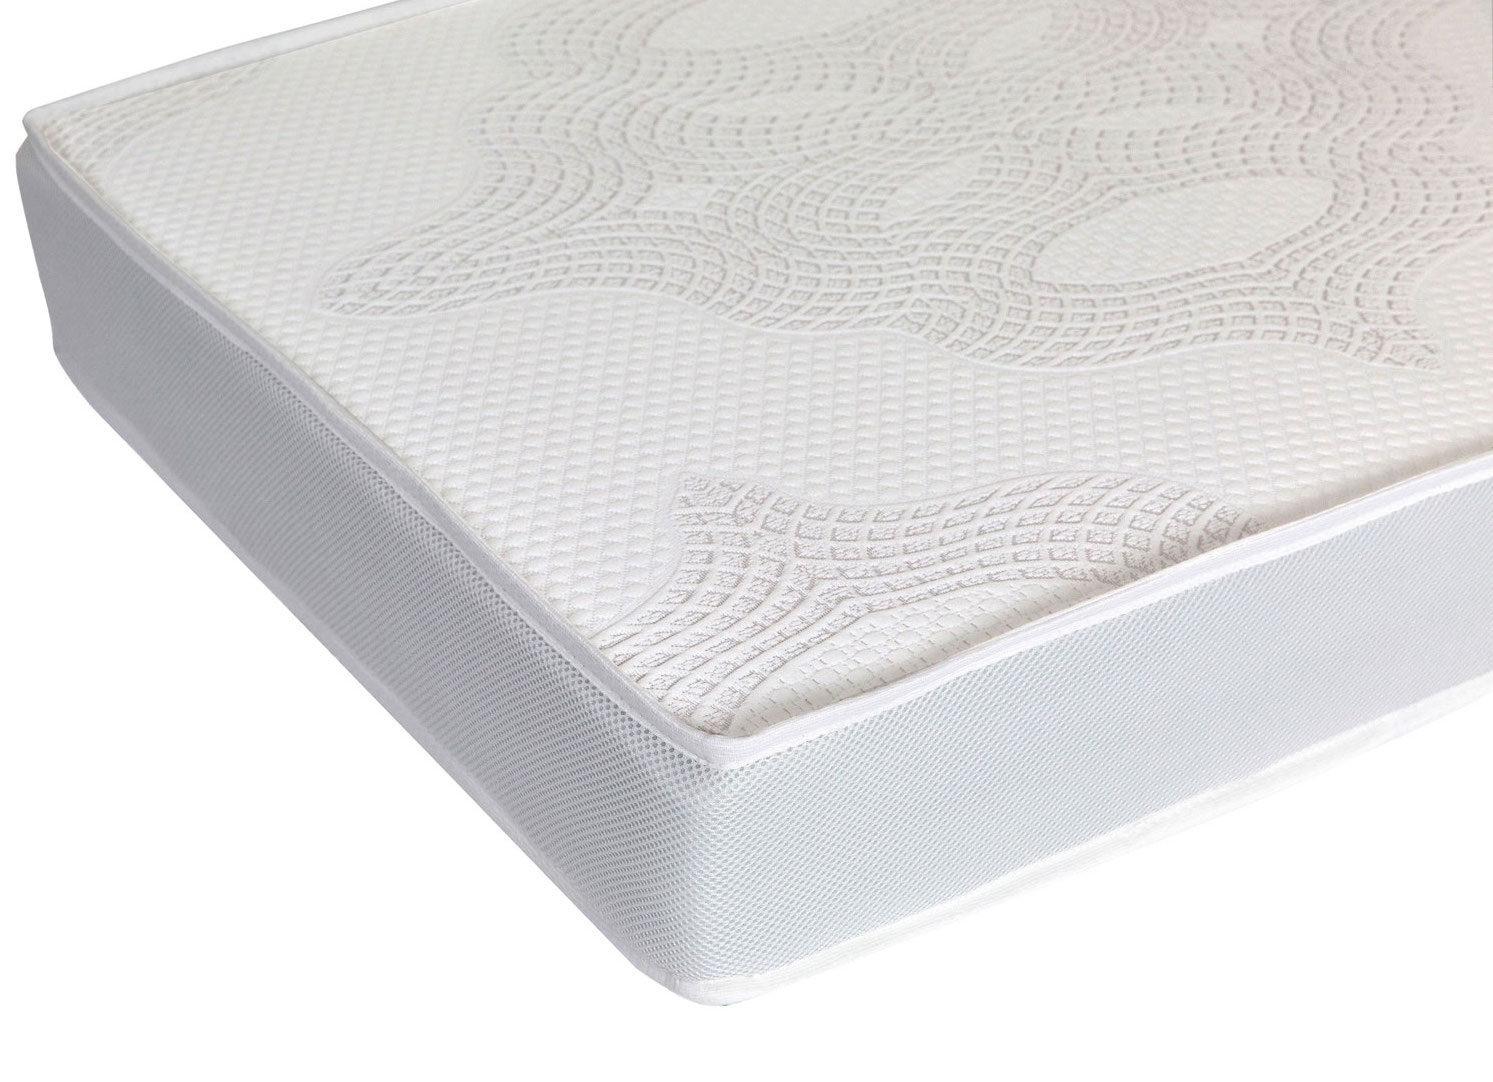 Very Helpful Crib Mattress Pad simmons crib mattresses - simmons dreamtime dual sided crib mattress